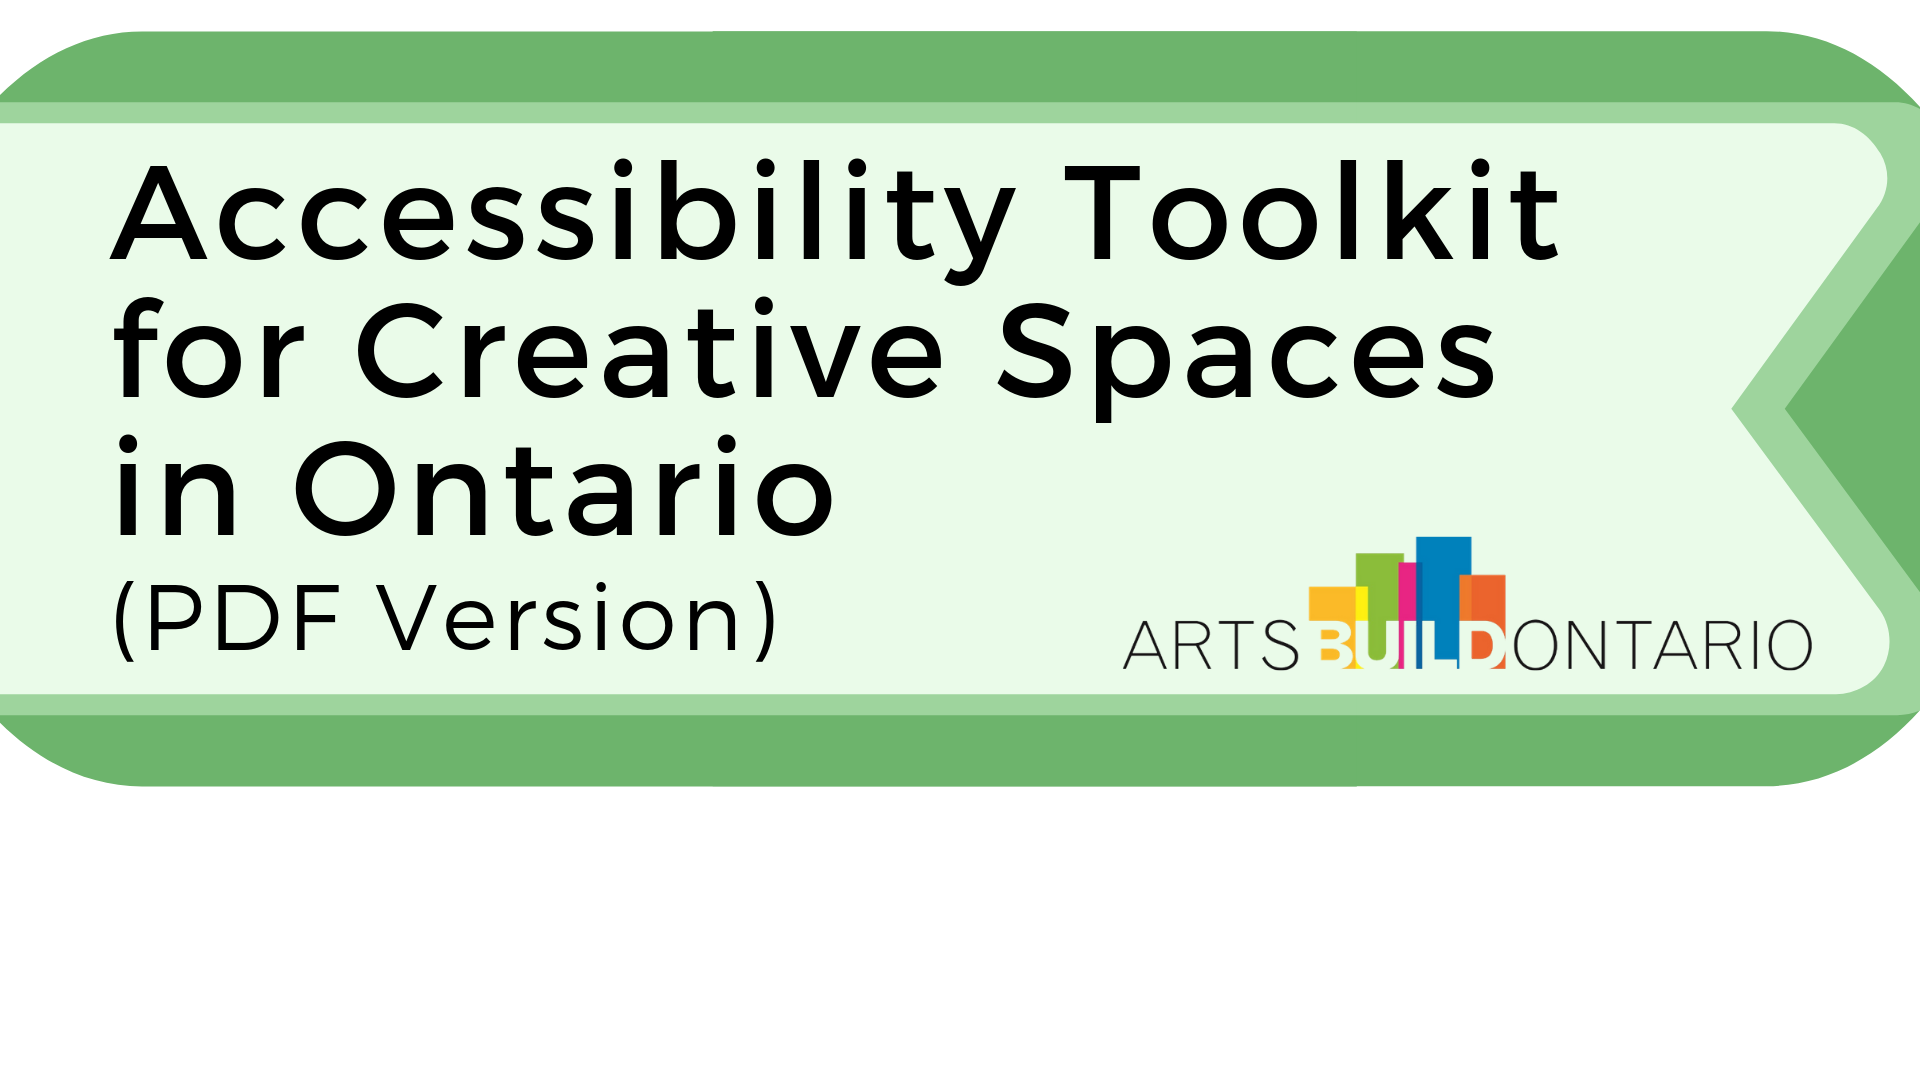 Button to access PDF version of Accessibility Toolkit for Creative Spaces in Ontario